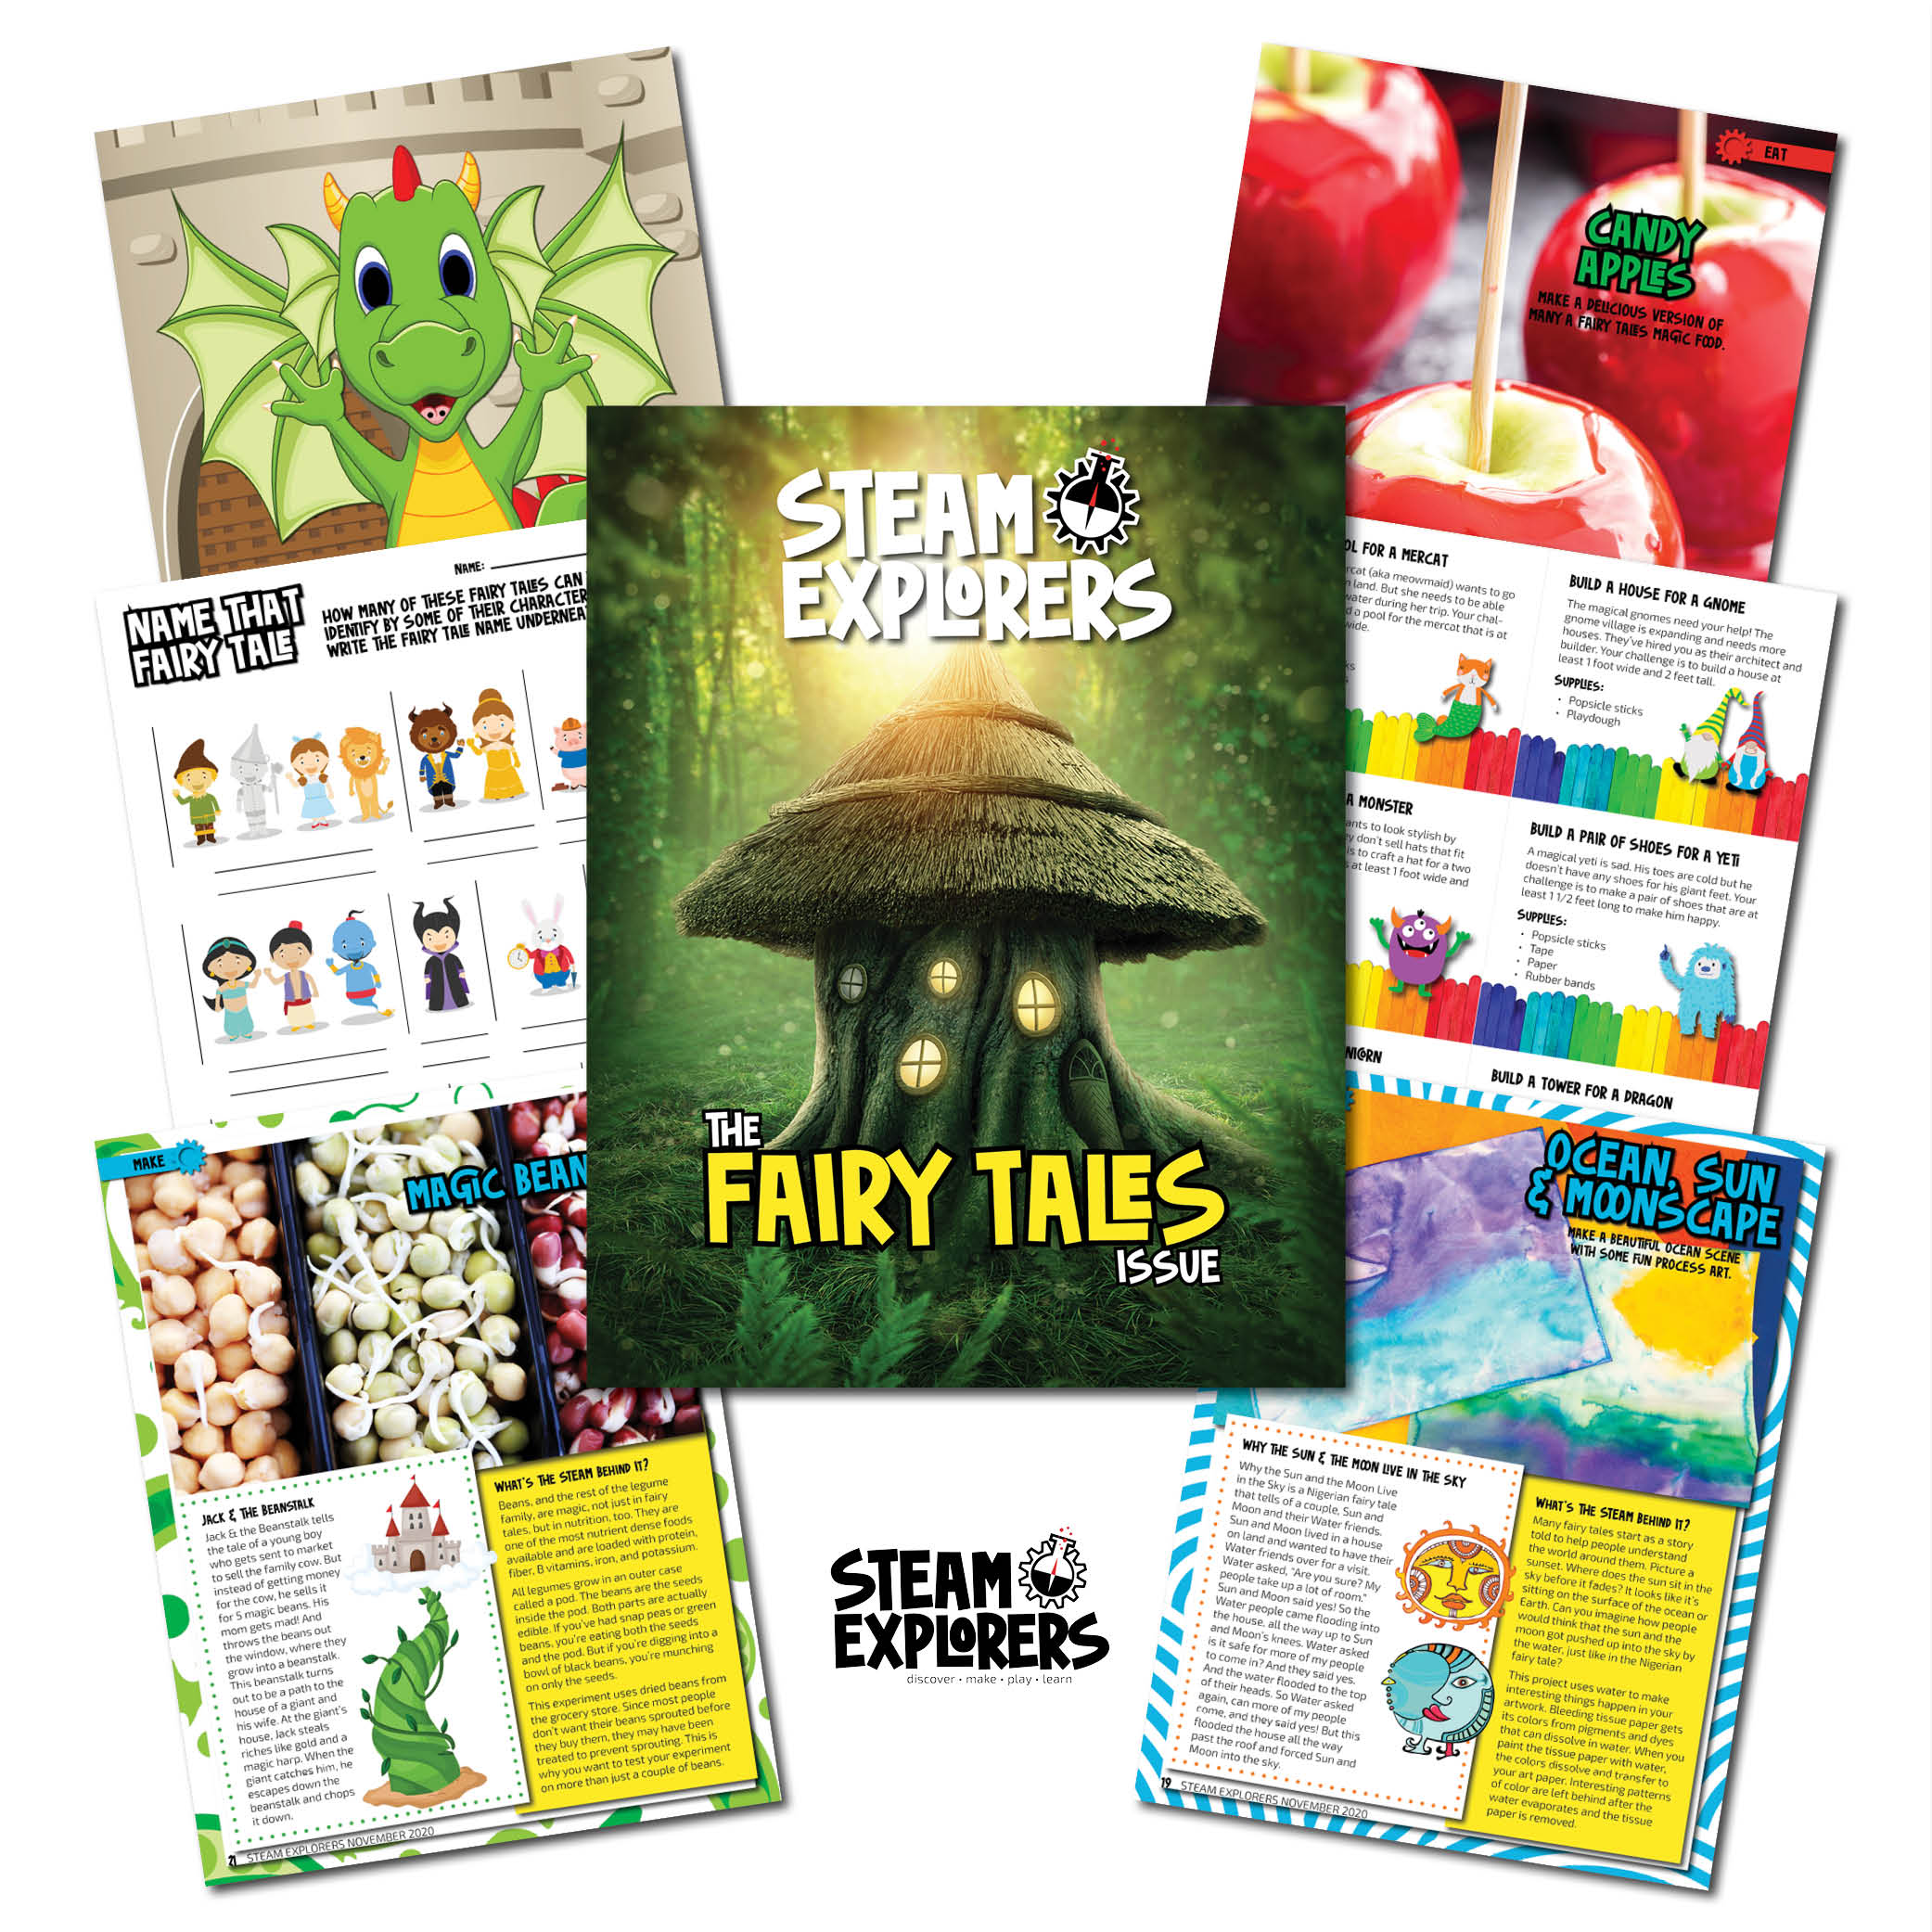 STEAM Explorers Fairy Tales Issue Whats Inside 1000x1000